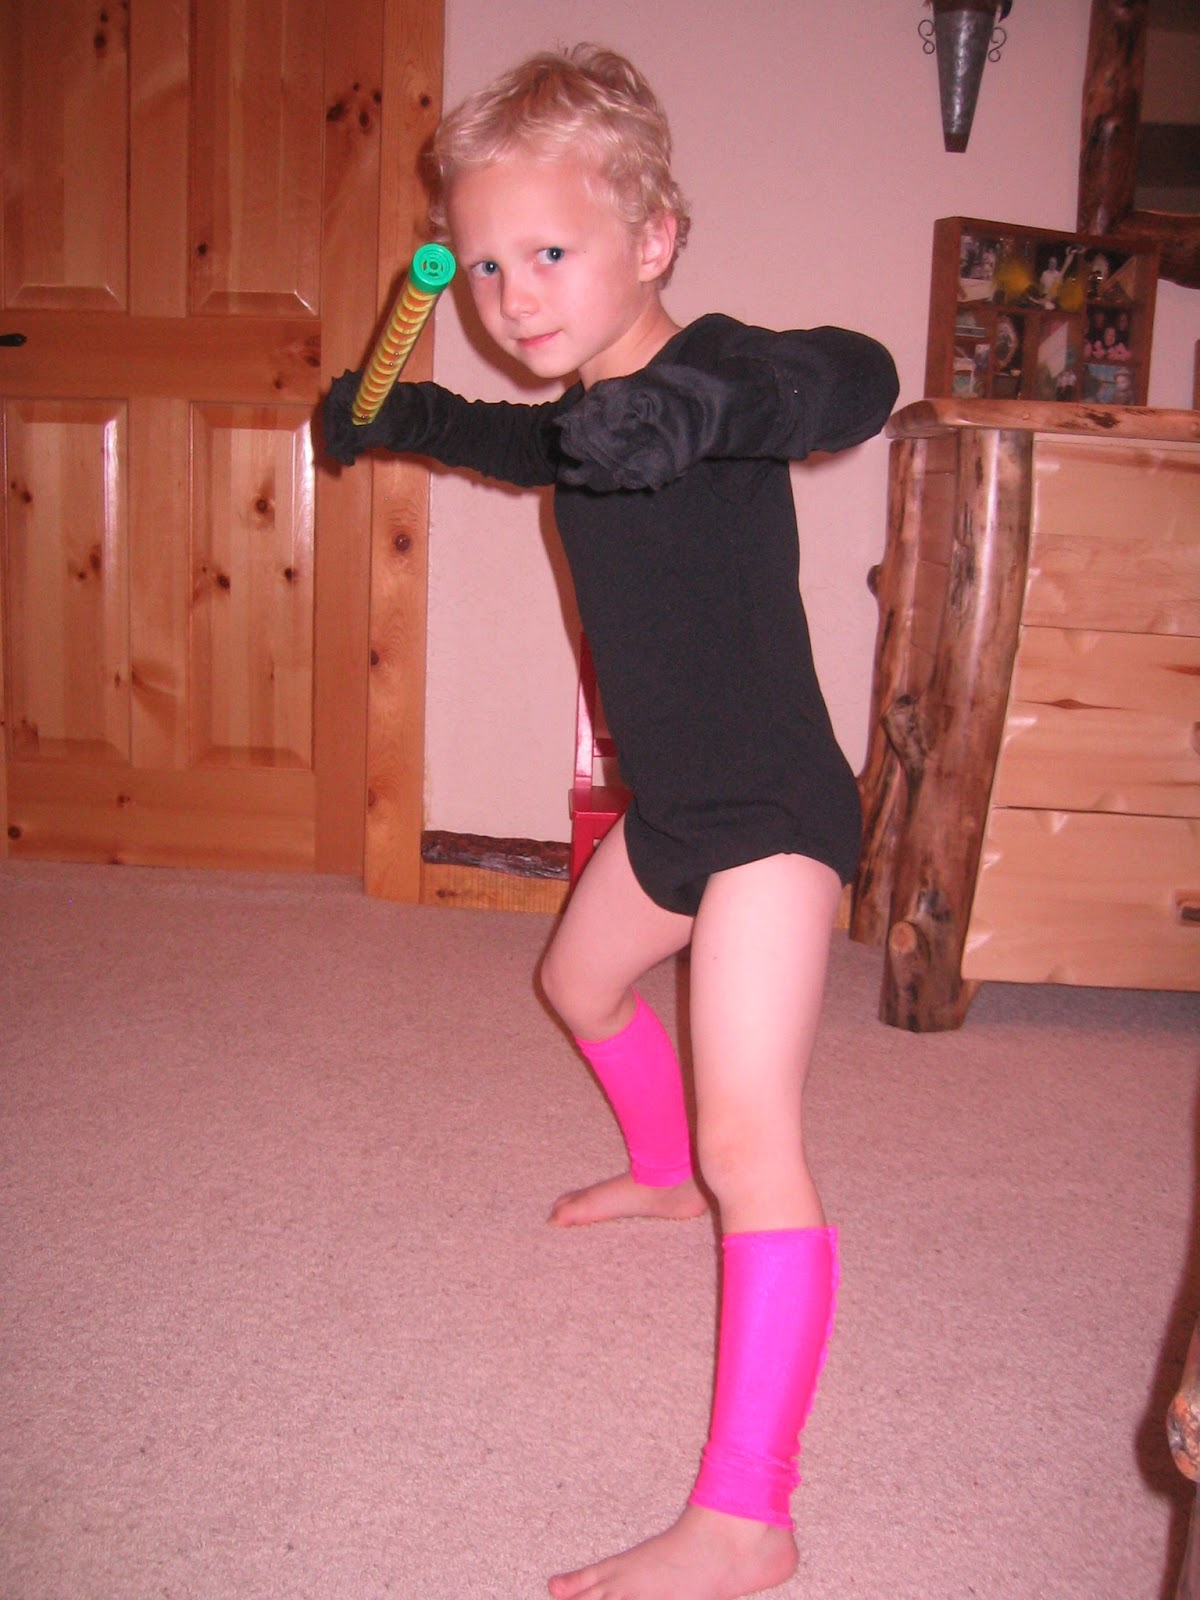 Sep 22,  · How to Dress up a Boy Like a Girl. Sometimes a boy wants or needs to dress like a girl. Whether it's for an acting role, just for fun, gaining a new perspective, or adopting a new lifestyle, a boy can easily dress like a girl. Girls tend to wear clothes that are more form fitting so you need to pick out an outfit that fits the boy well 63%().